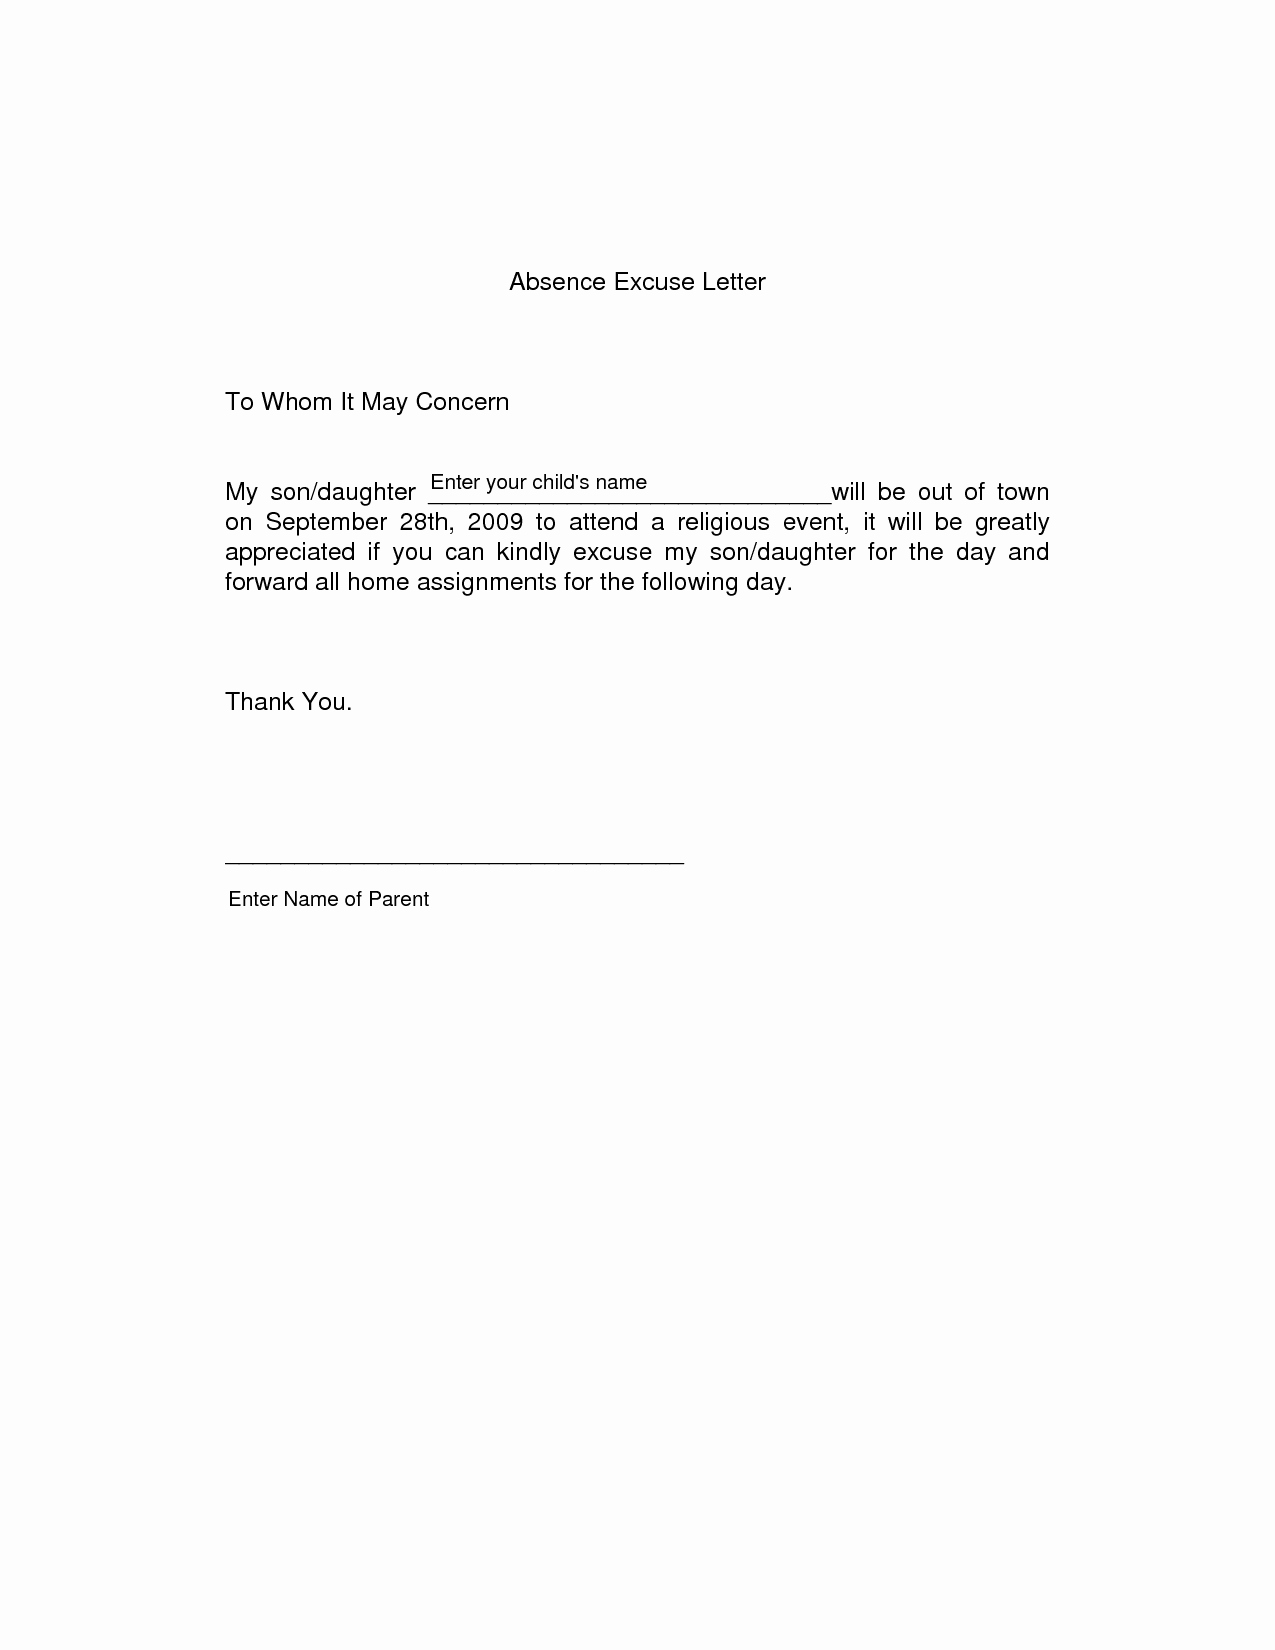 Absence From School Letter Sample Fresh format Excuse Letter for Being Absent Best Template